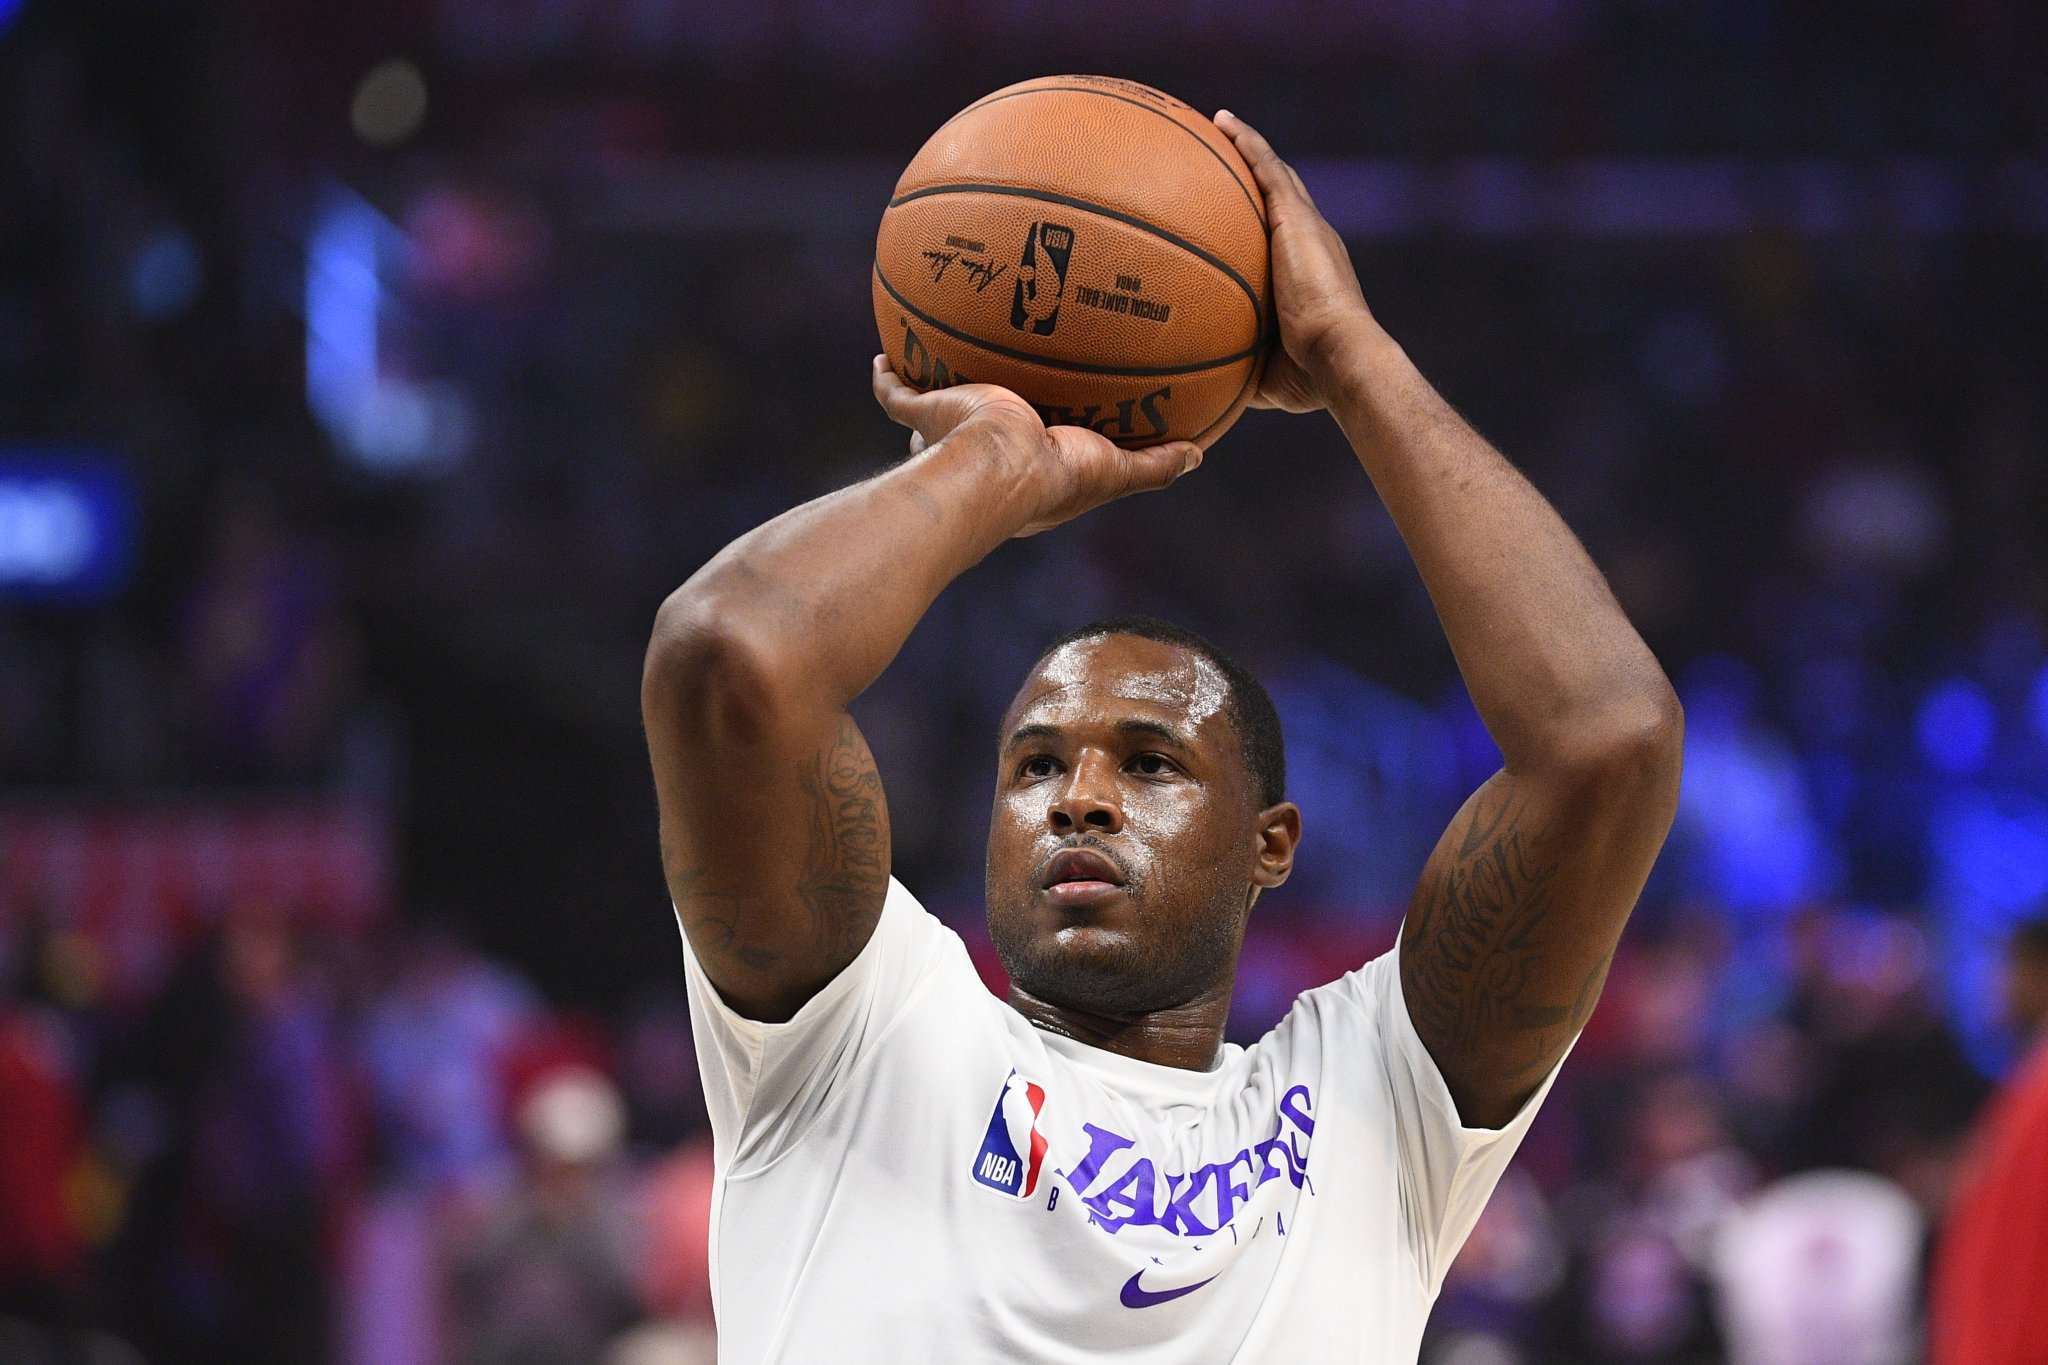 Lakers' Dion Waiters Takes A Shot At The Miami Heat For Trying To 'Bury' Him With Suspensions Earlier In Season - BroBible